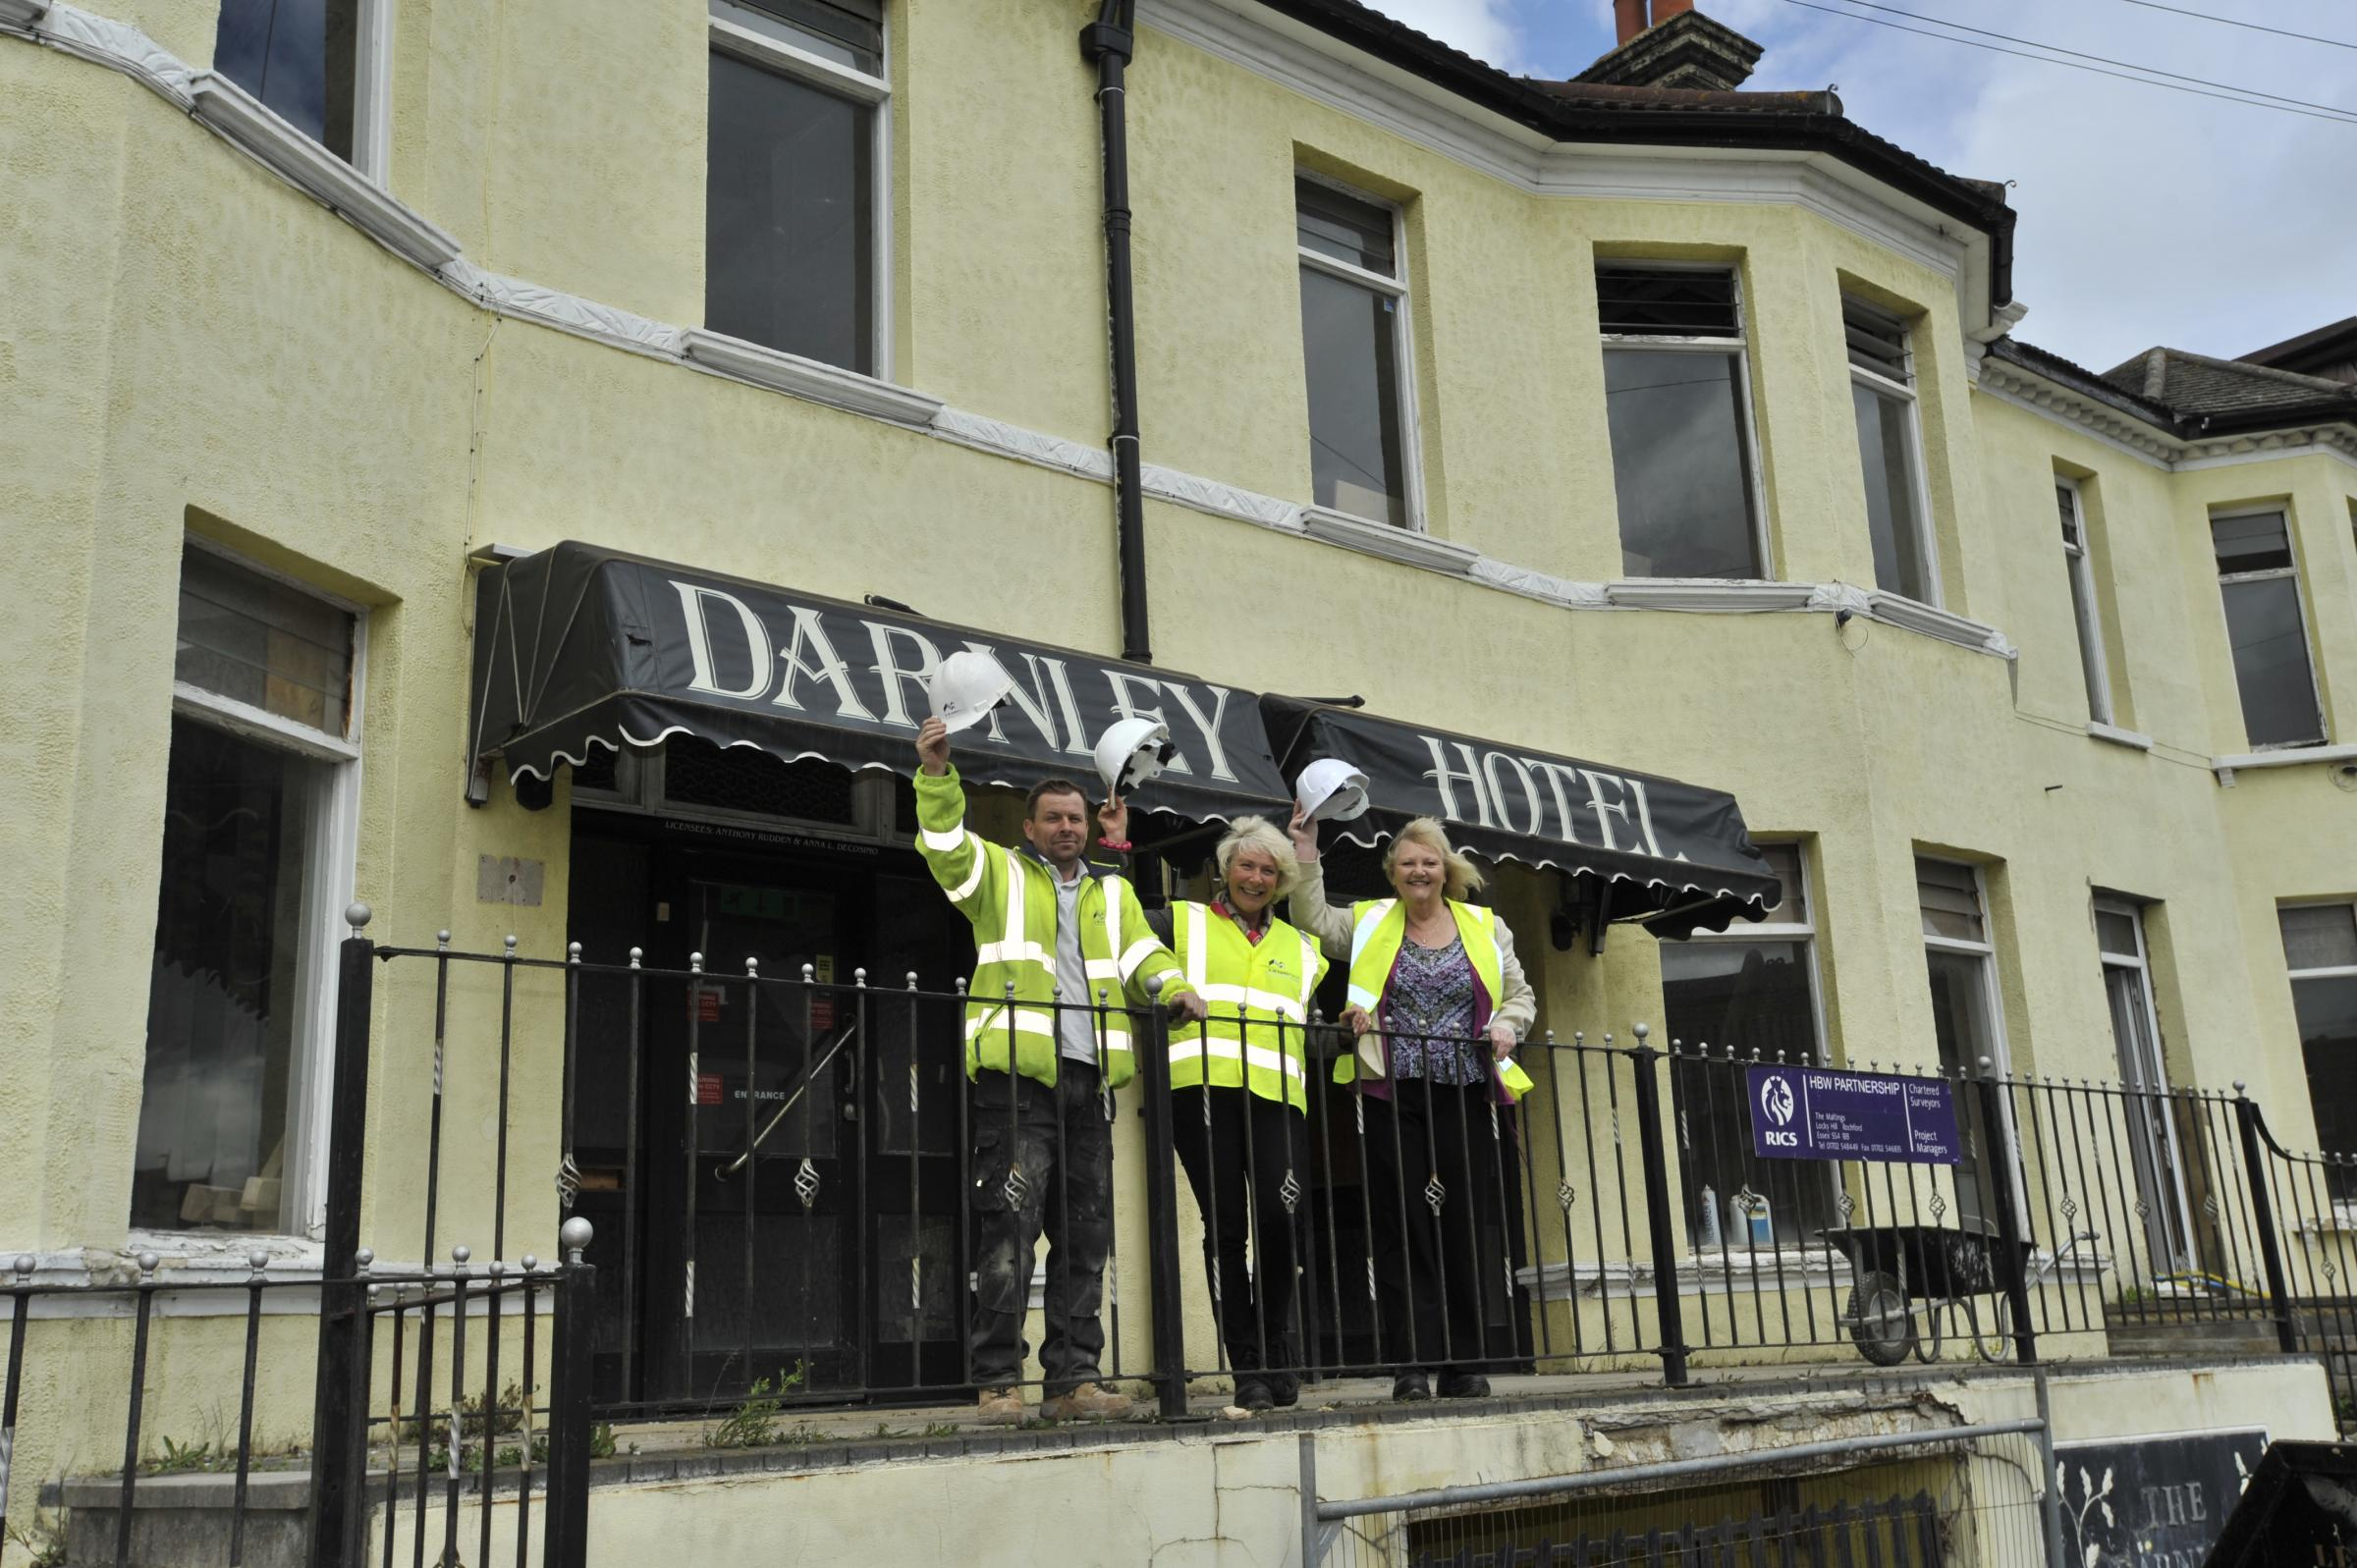 Amazing pictures of derelict hotel's £2.3m transformation